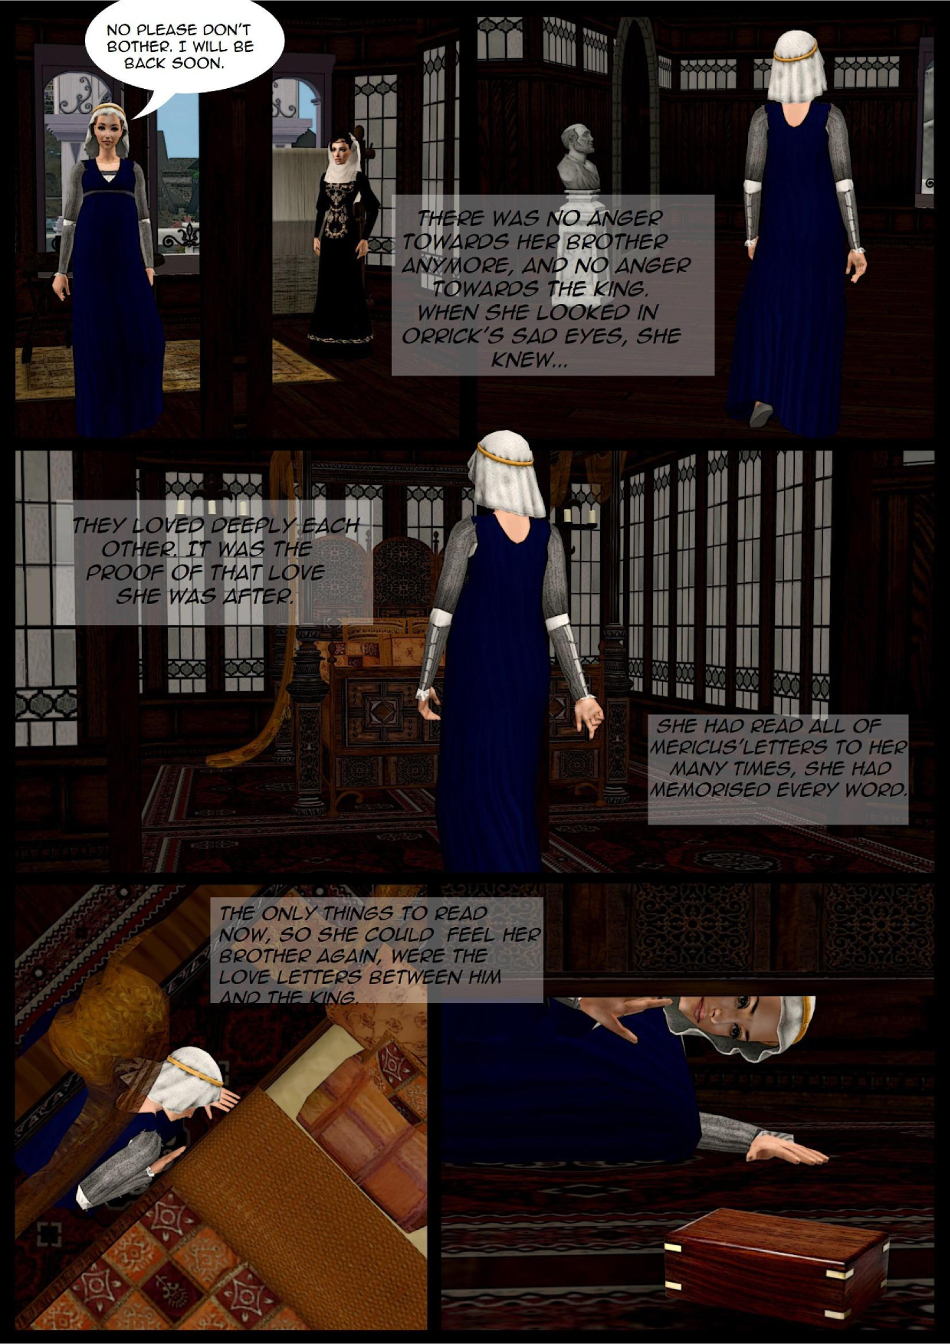 The throne room p.5